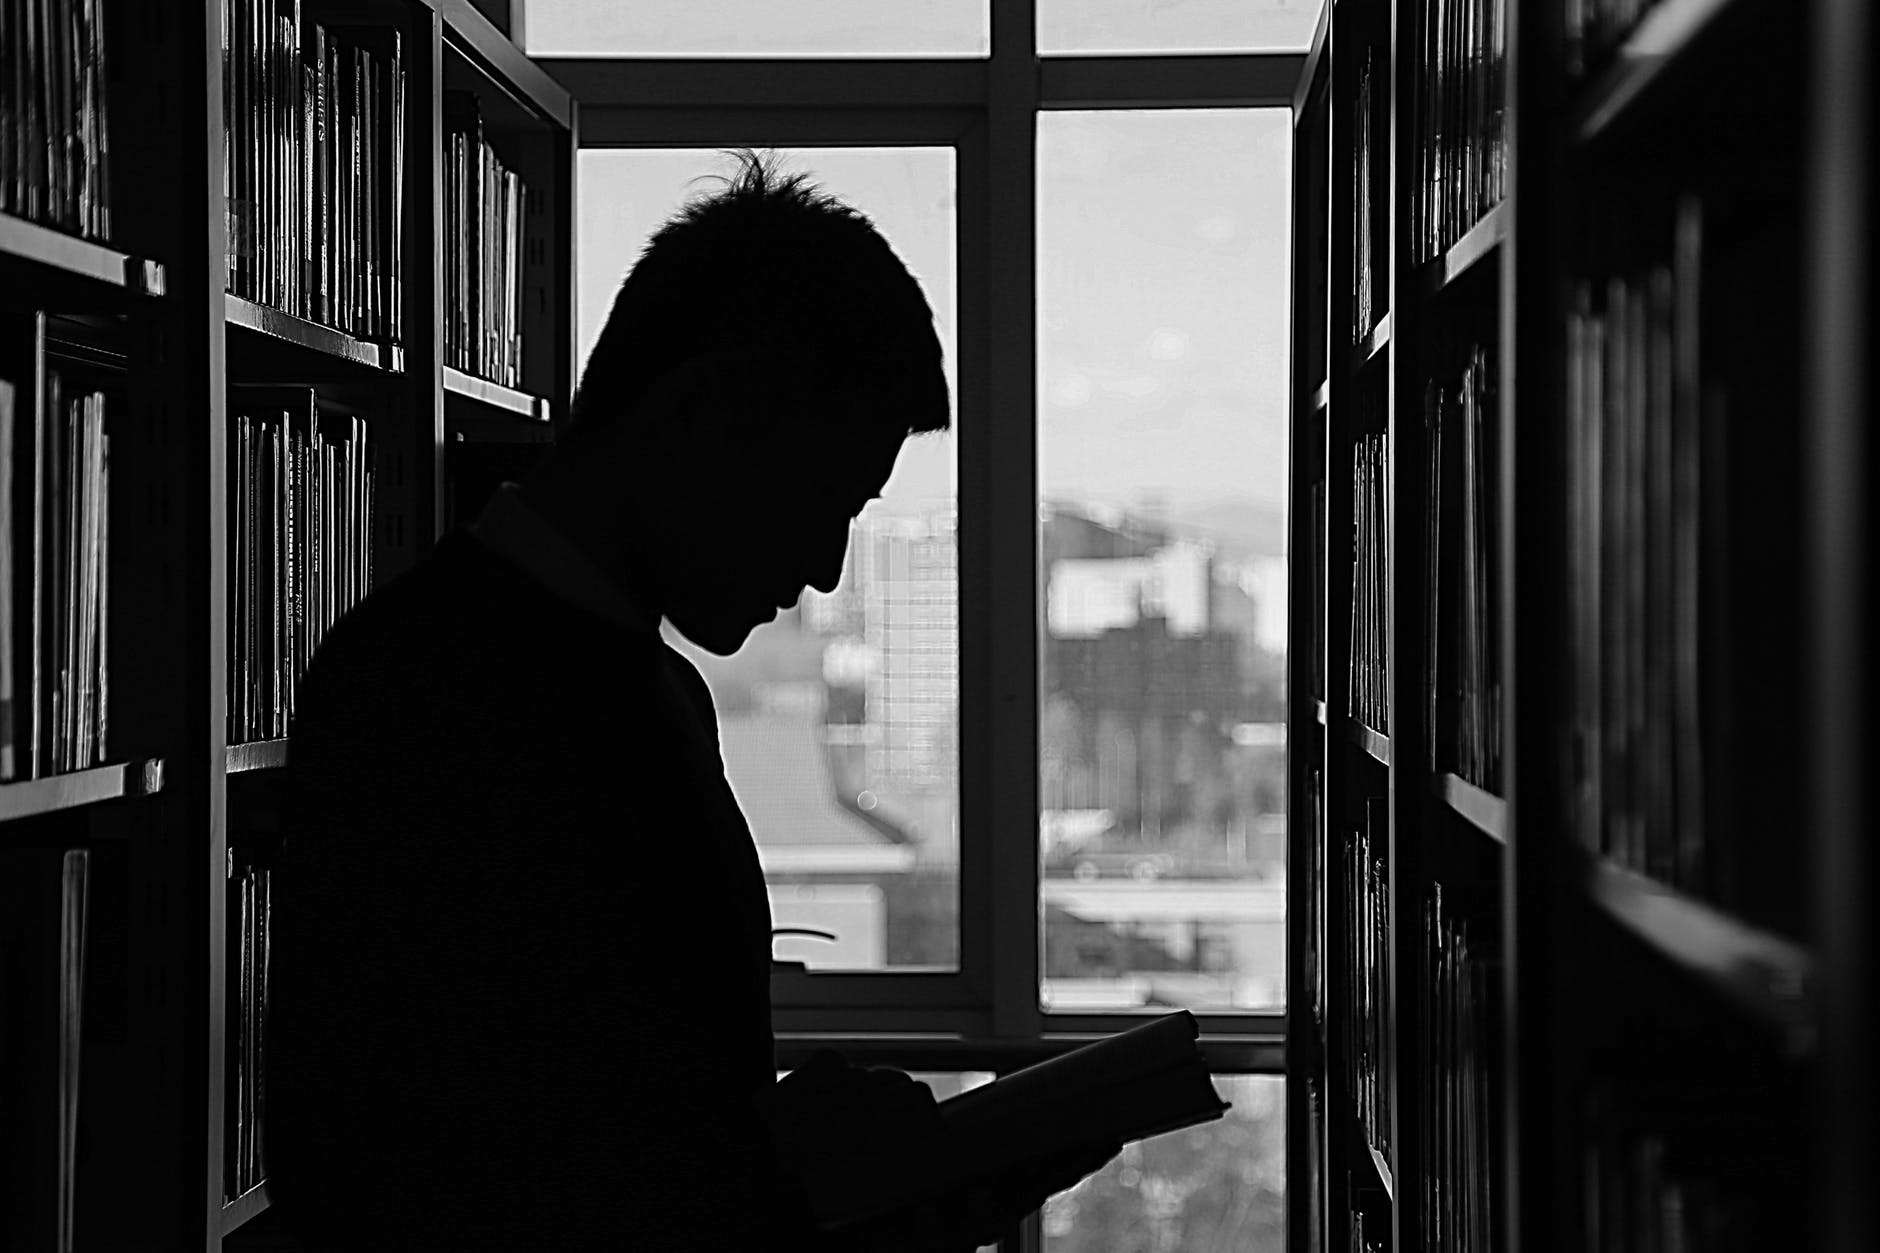 shadow of man reading inside a library